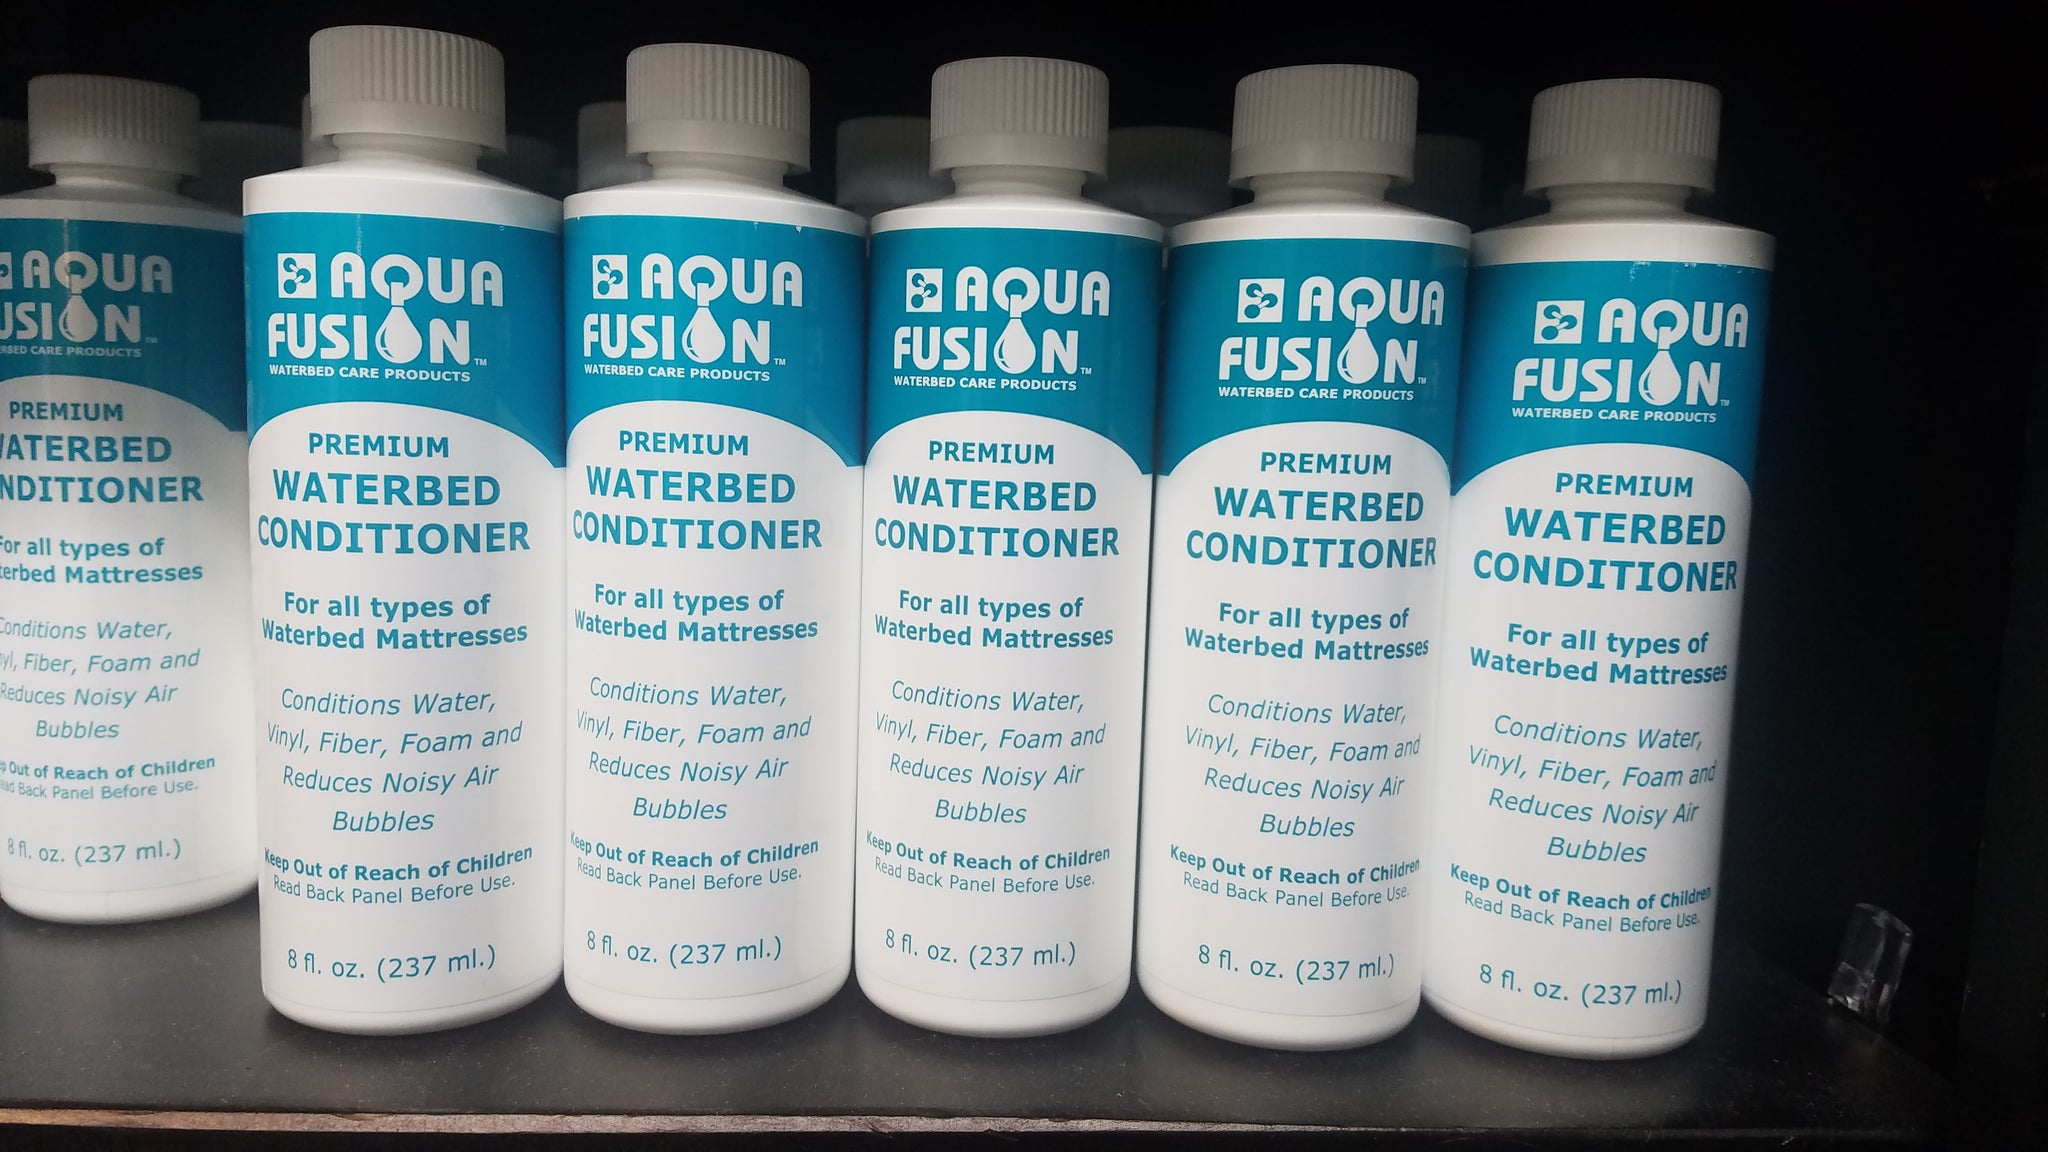 Aqua Fusion Premium Waterbed Conditioner